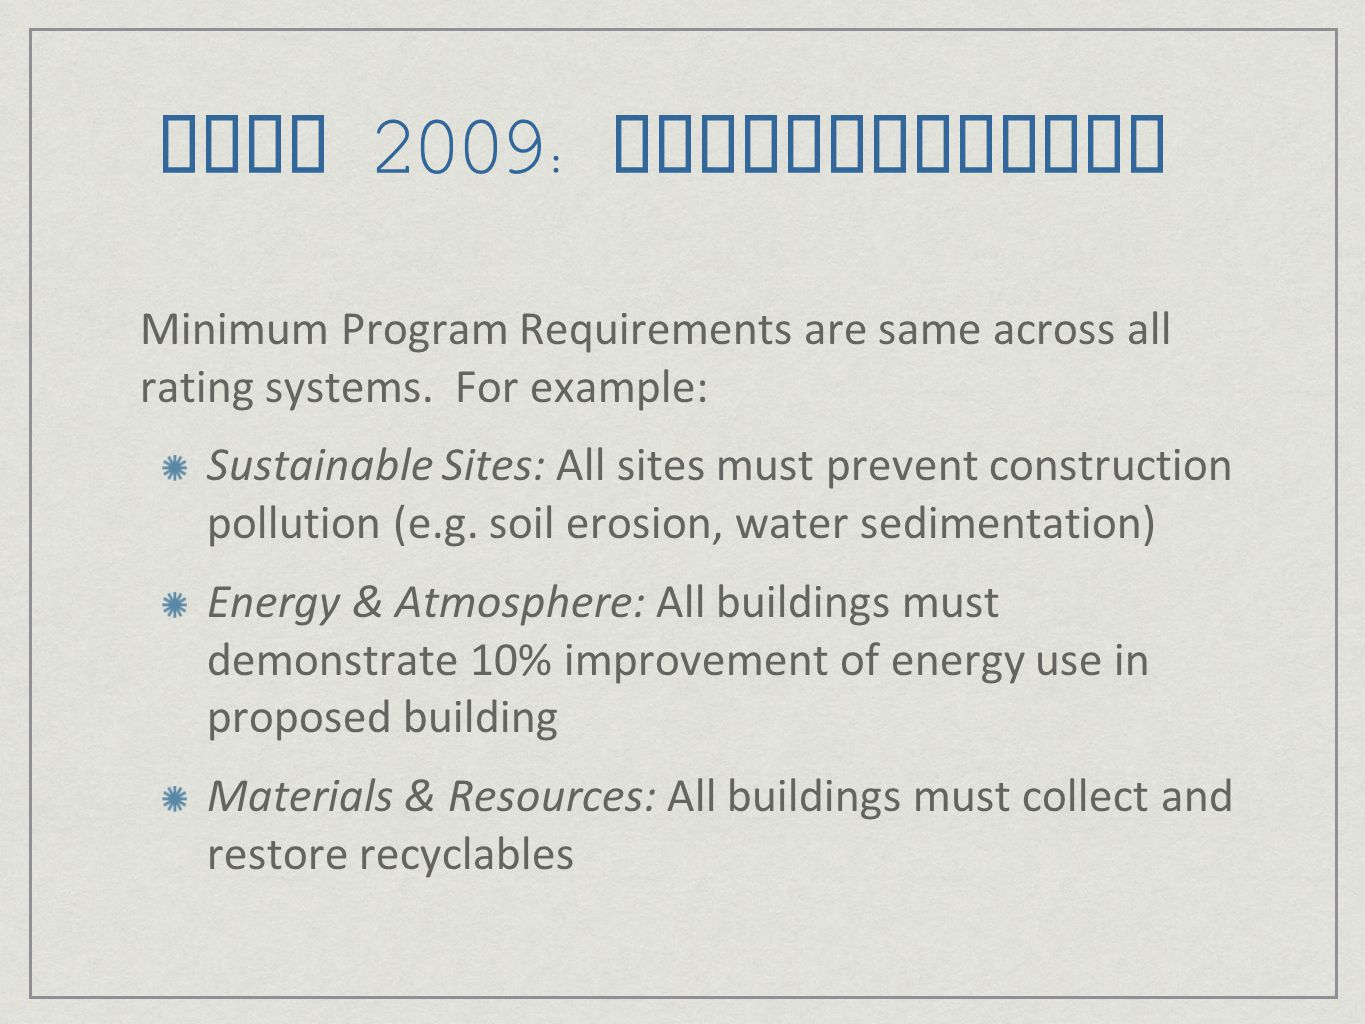 LEED 2009: Harmonization These standards are intended to: Give clear guidance to developers Protect the integrity of LEED Reduce complications during the certification process